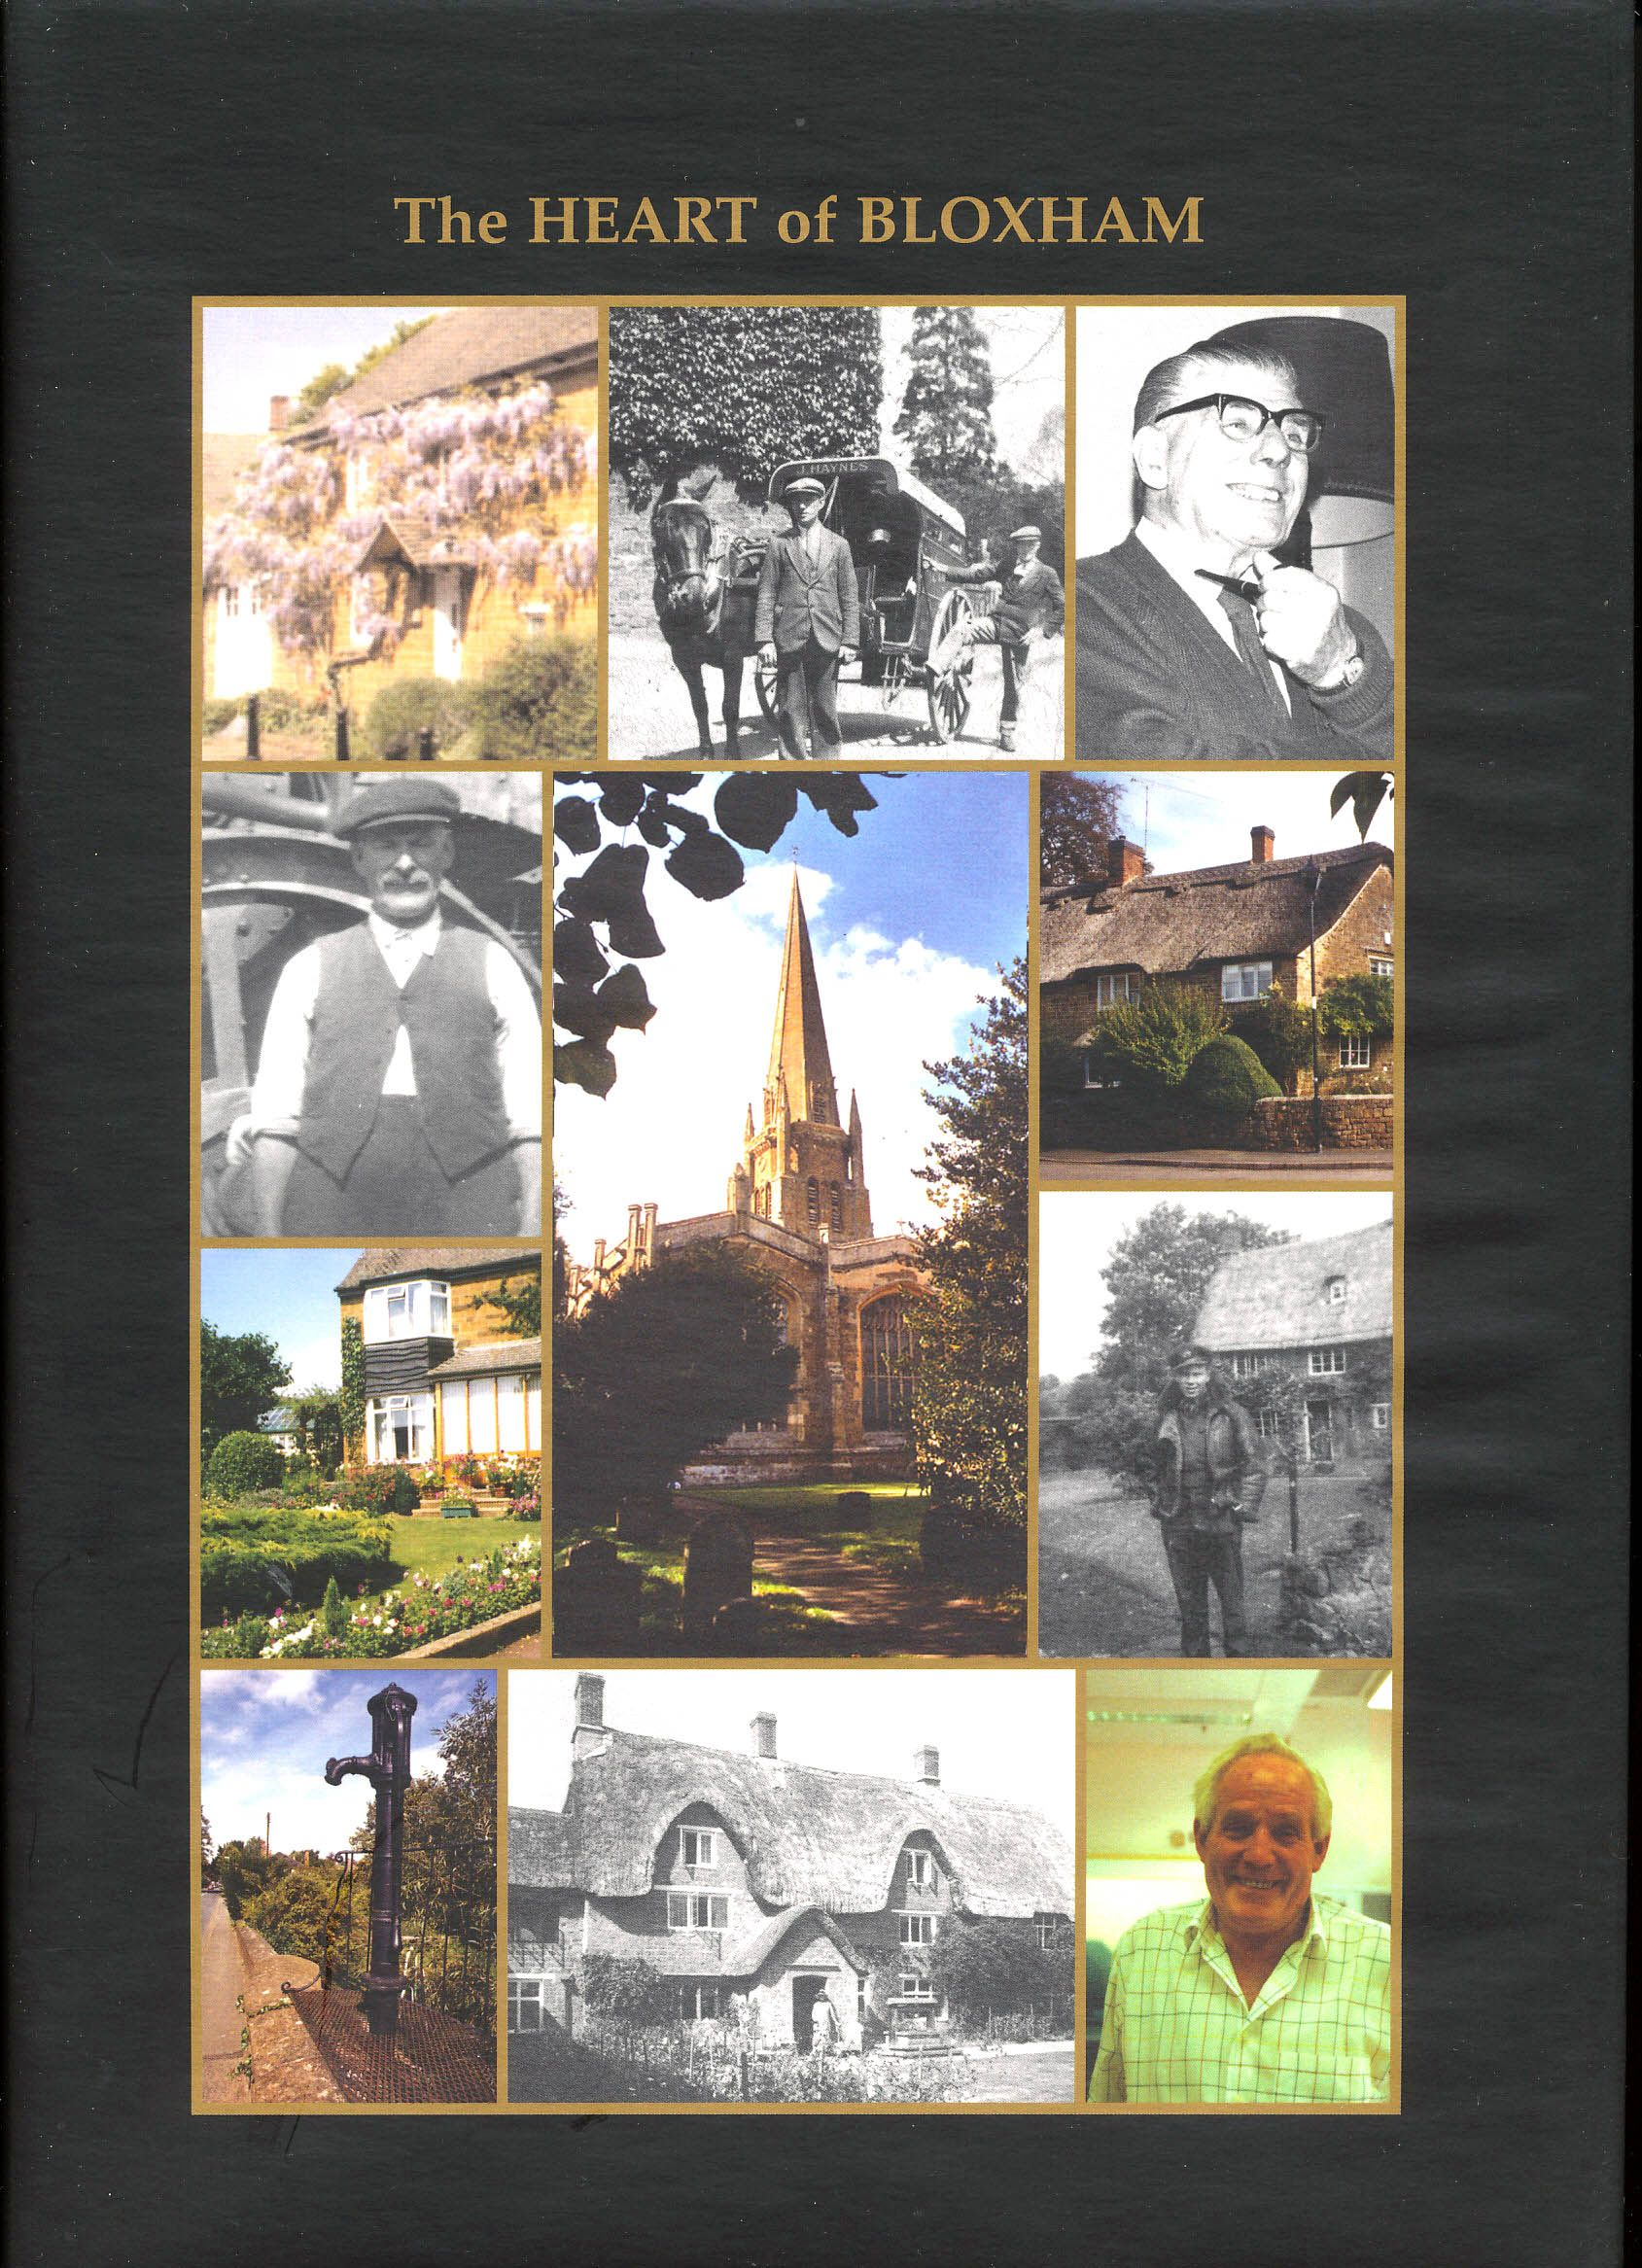 The heart of Bloxham Book